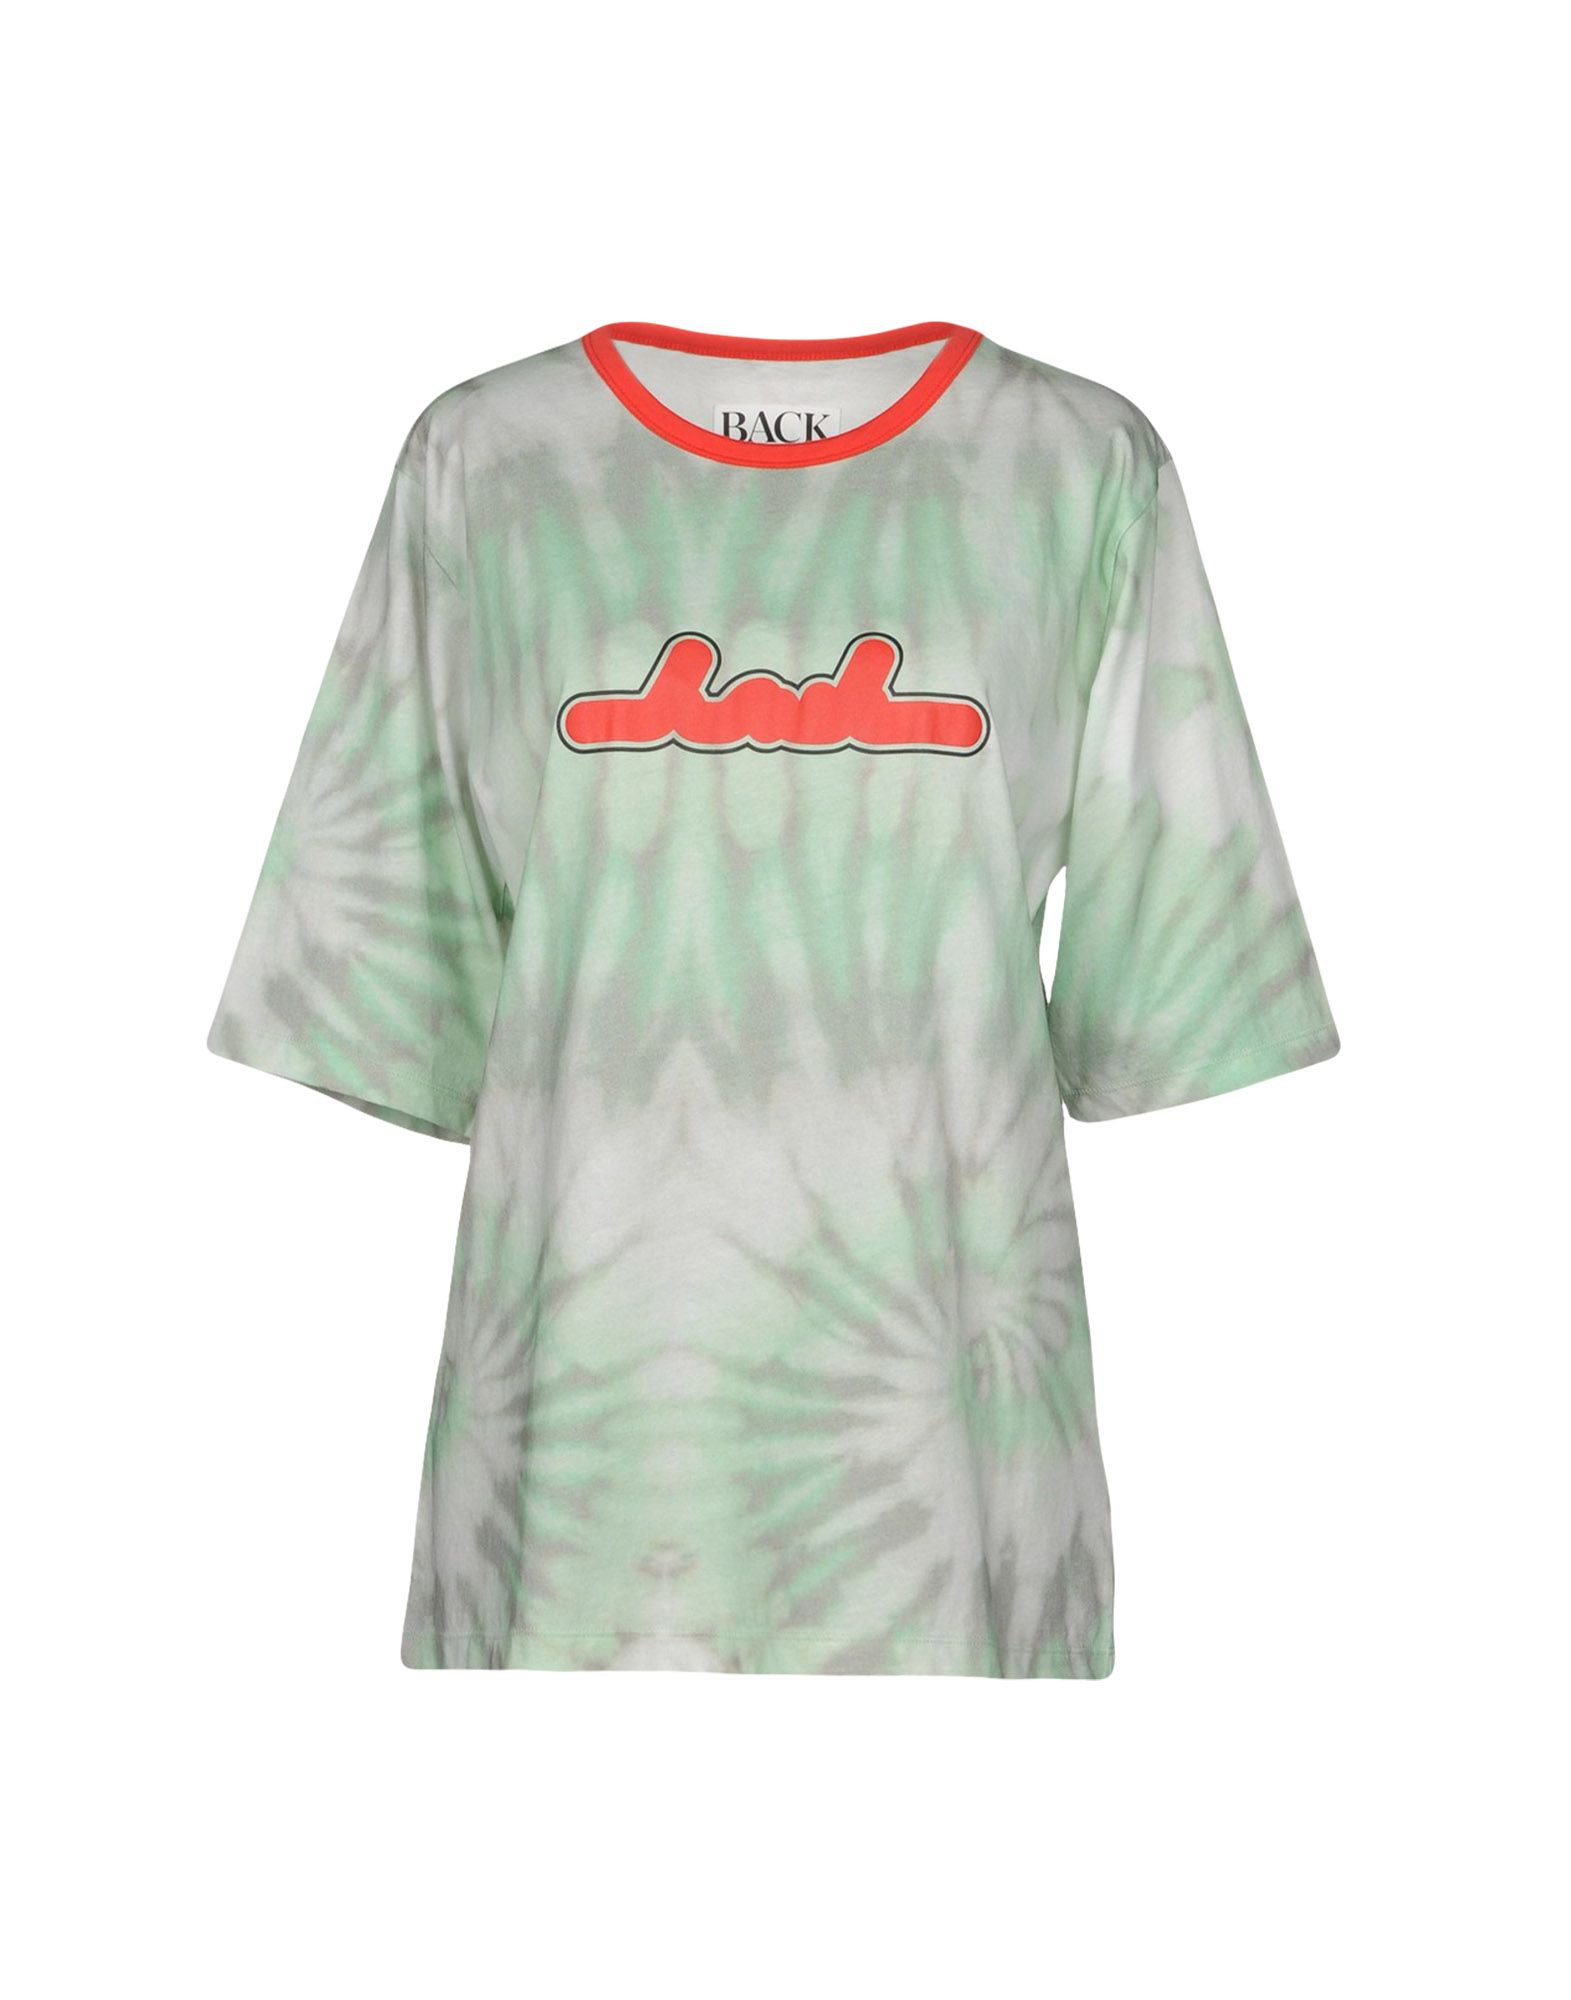 BACK T-Shirts in Light Green